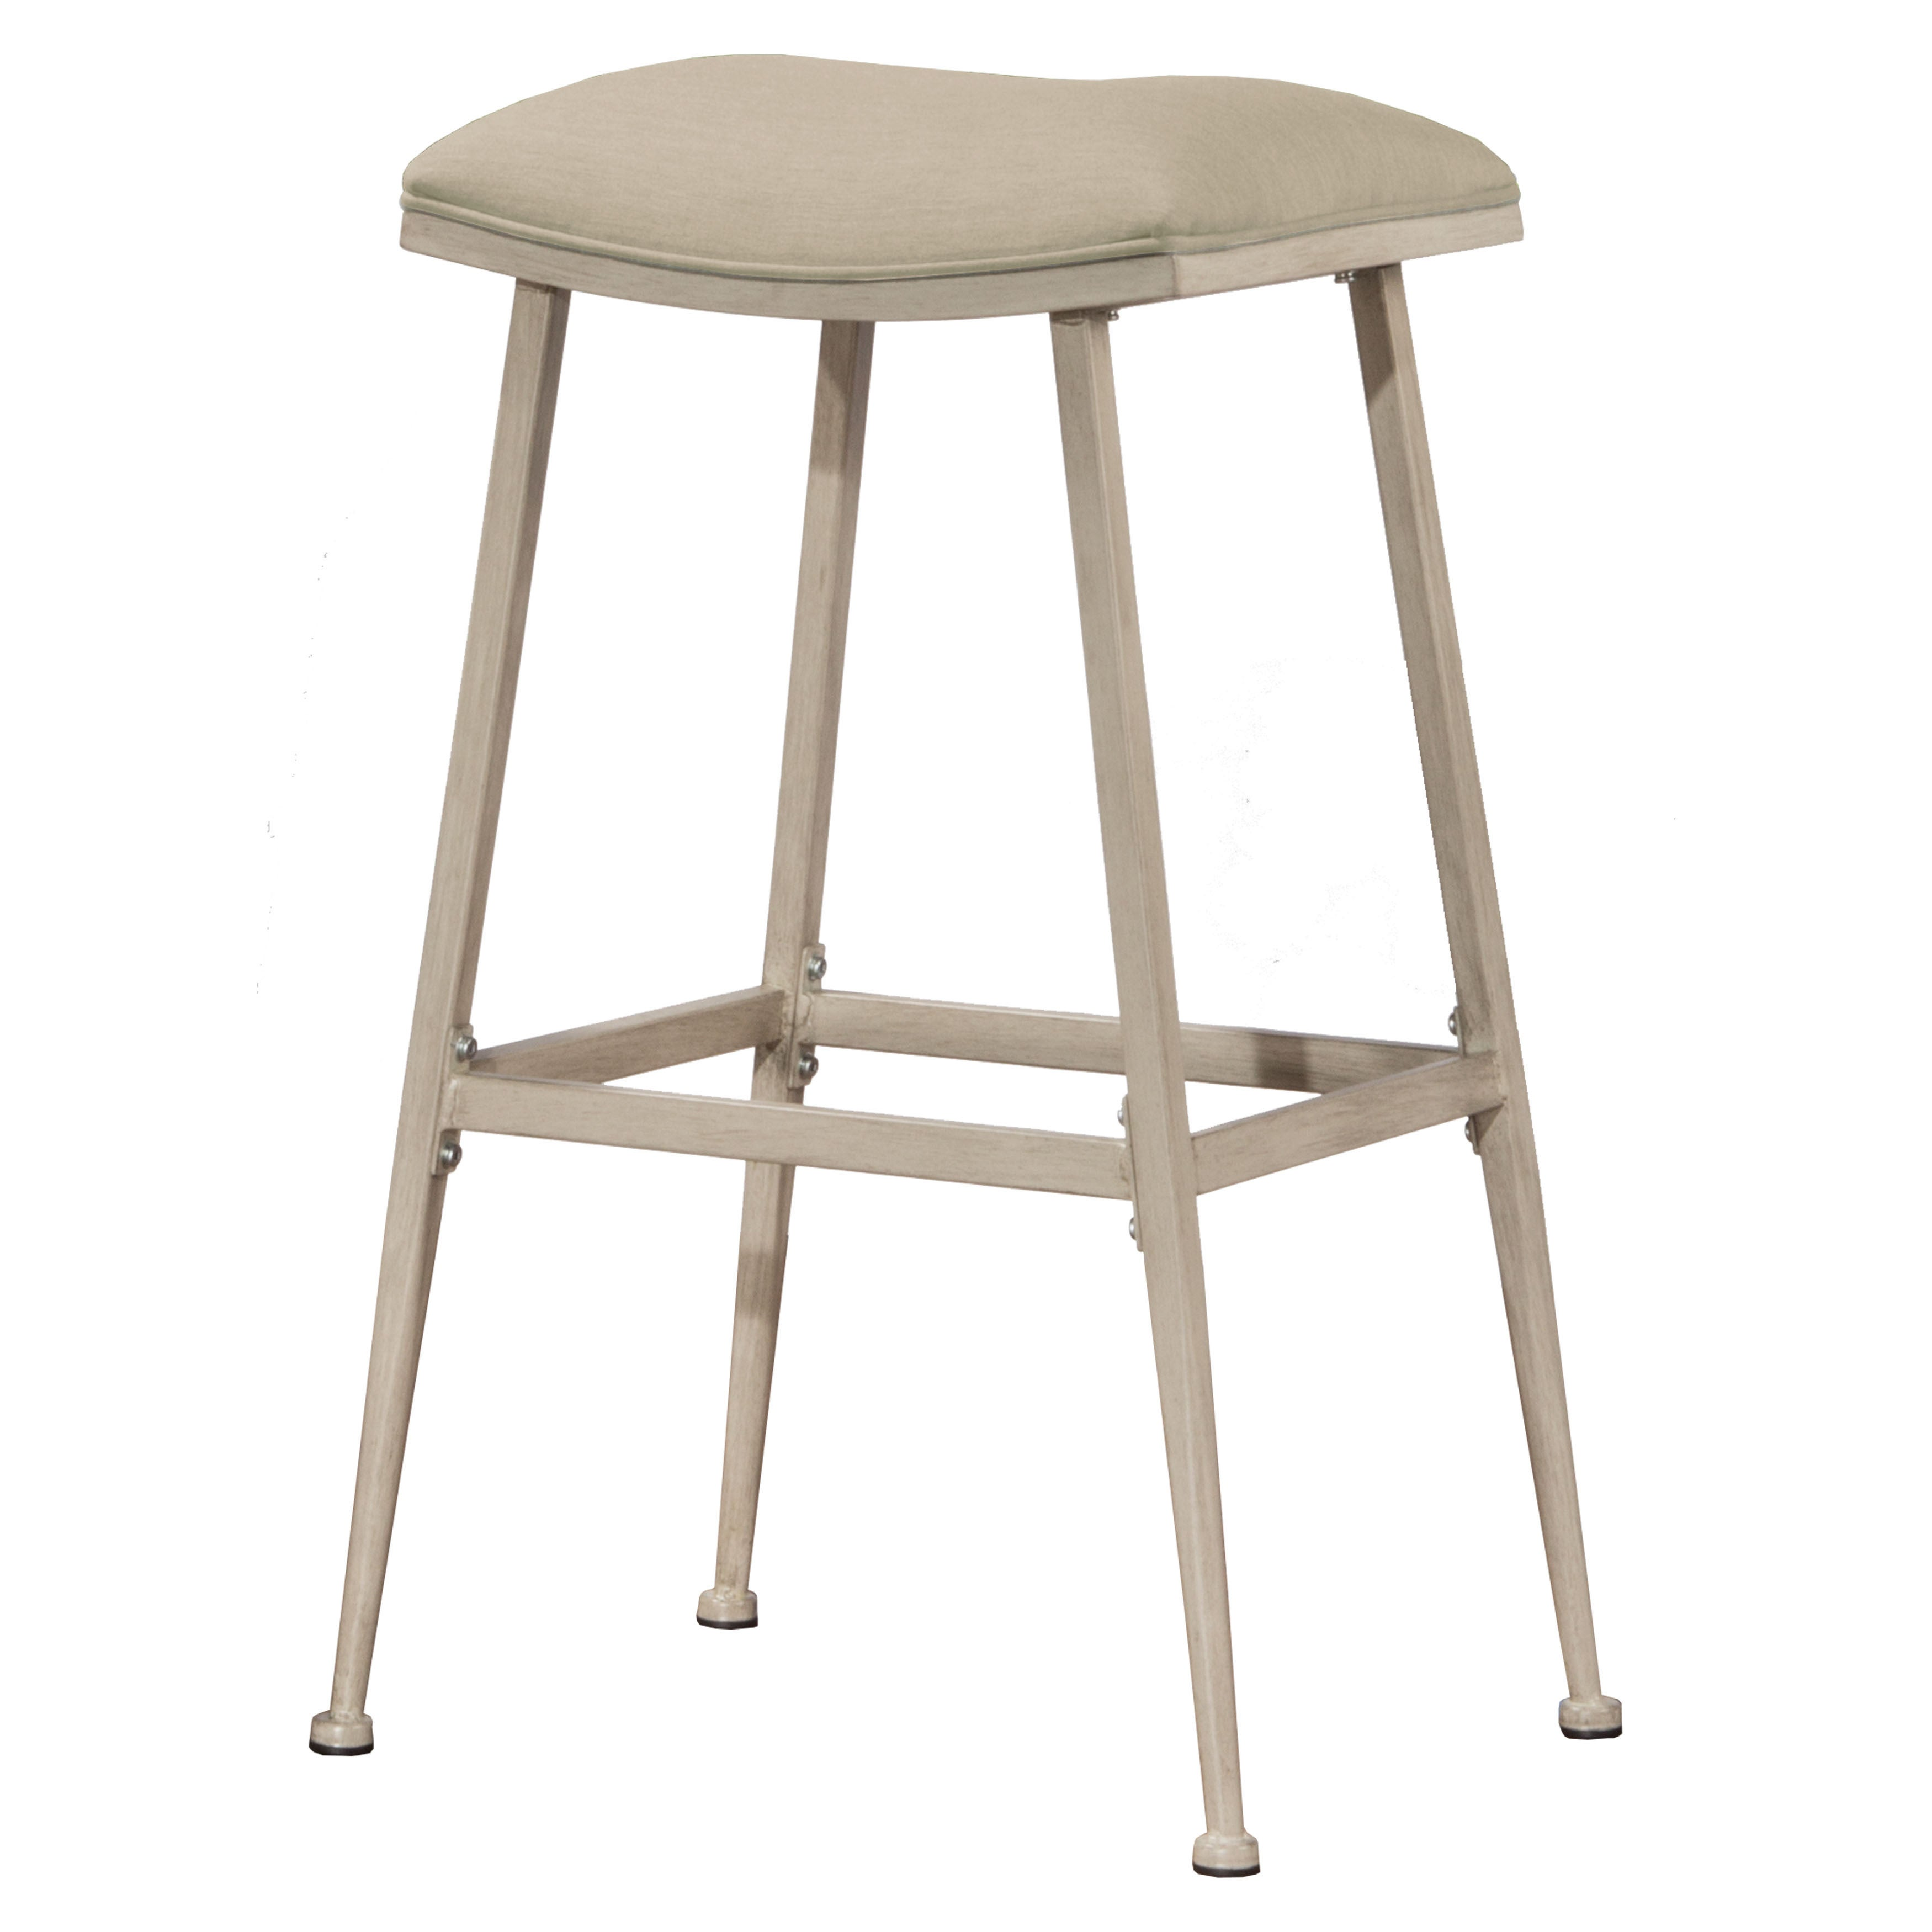 Shop hillsdale furniture flynn white metal fabric indoor outdoor non swivel backless bar stool free shipping on orders over 45 overstock com 15268961